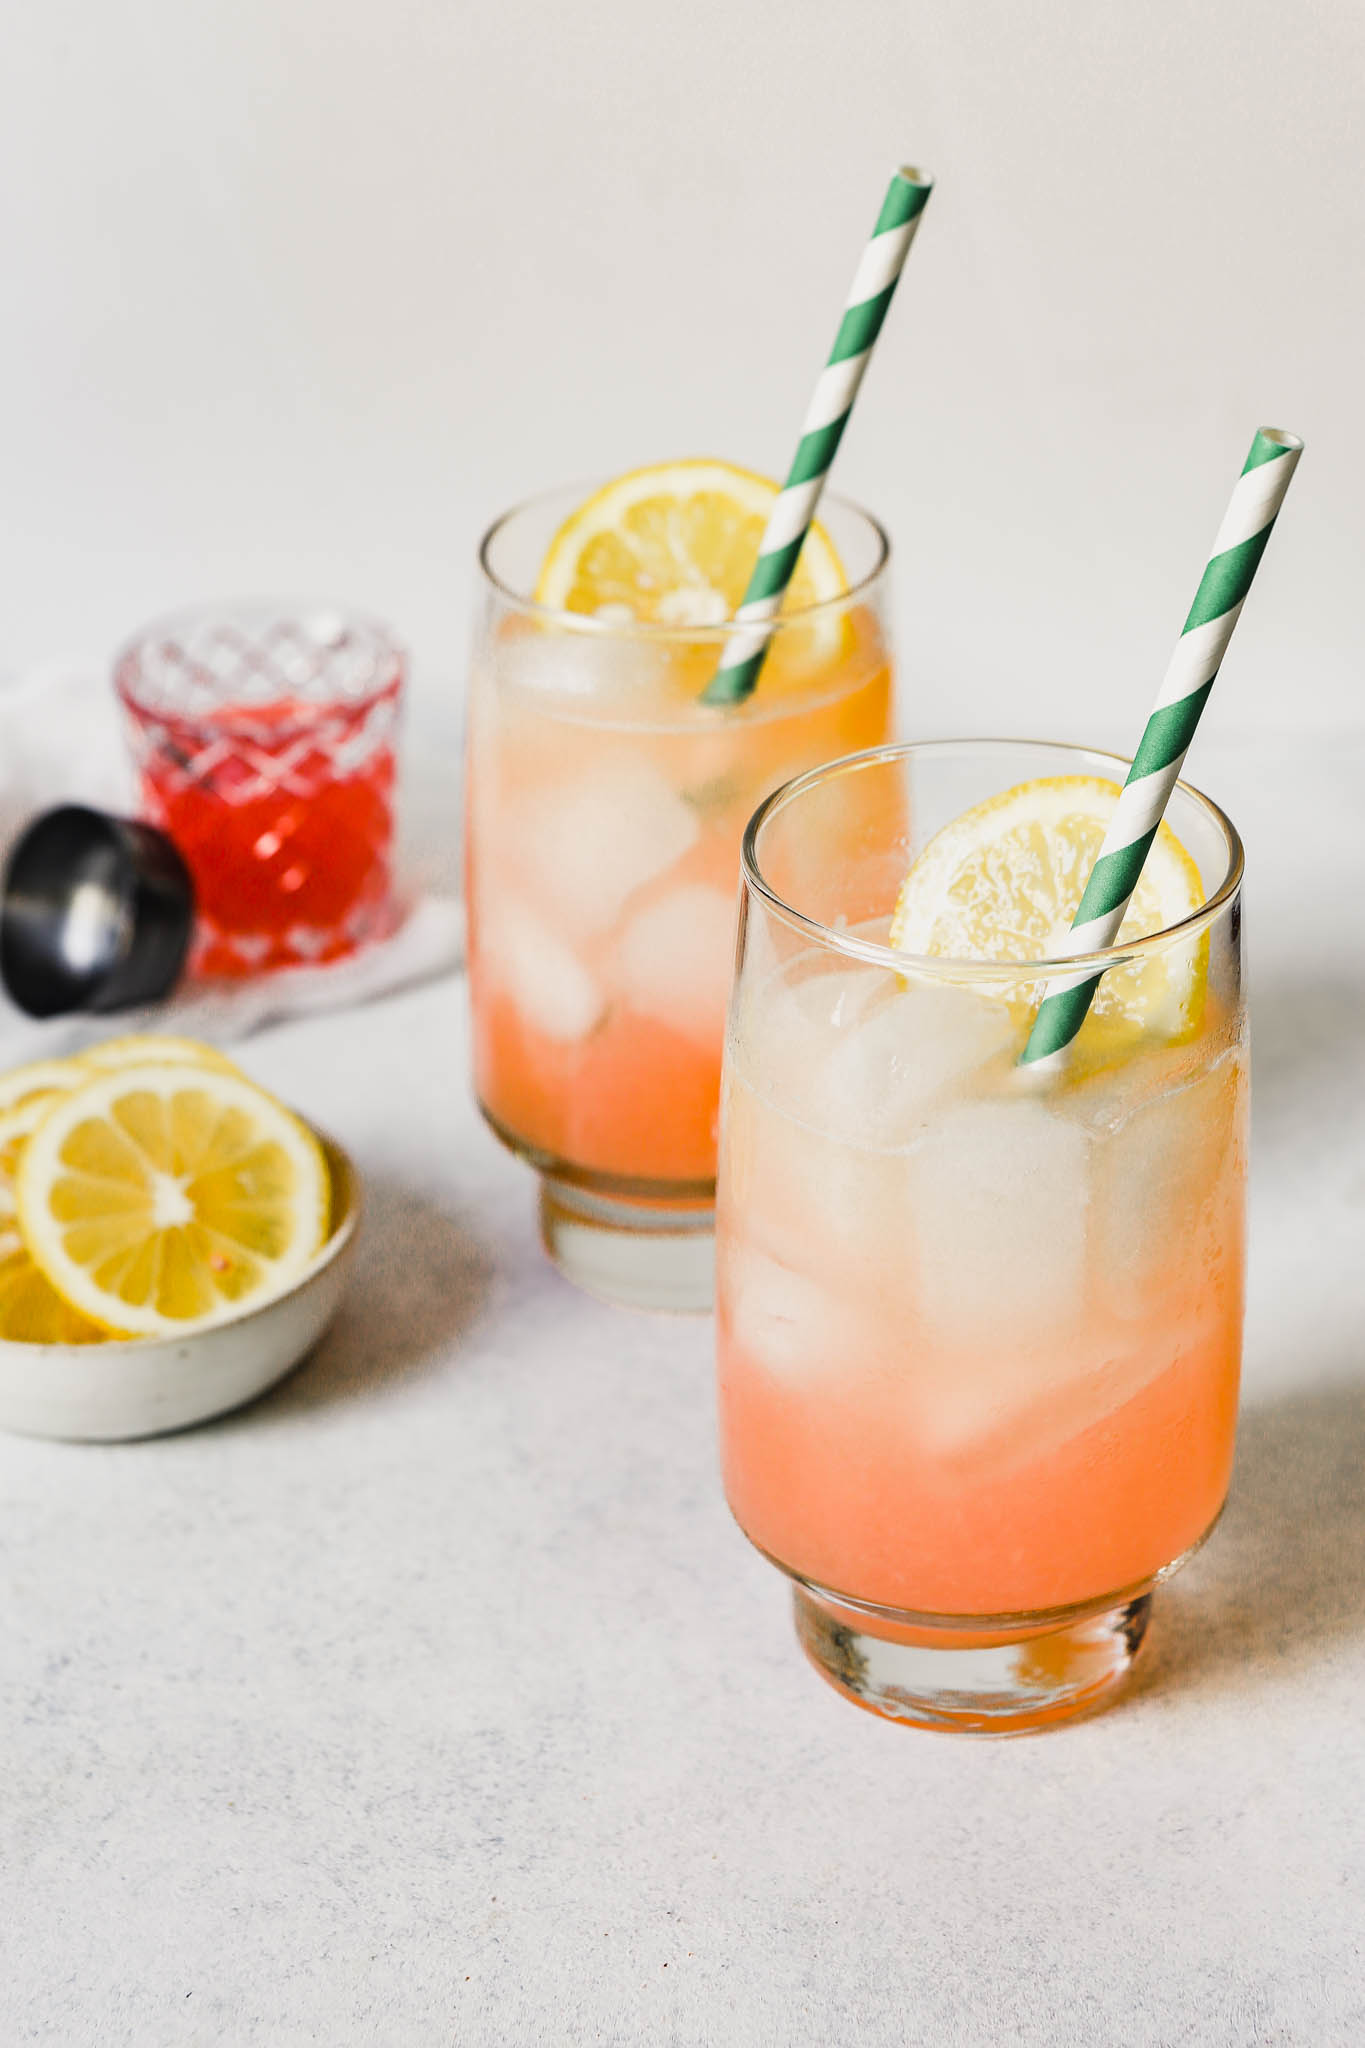 Photograph of rhubarb fizz in tall glasses with stripped green straws